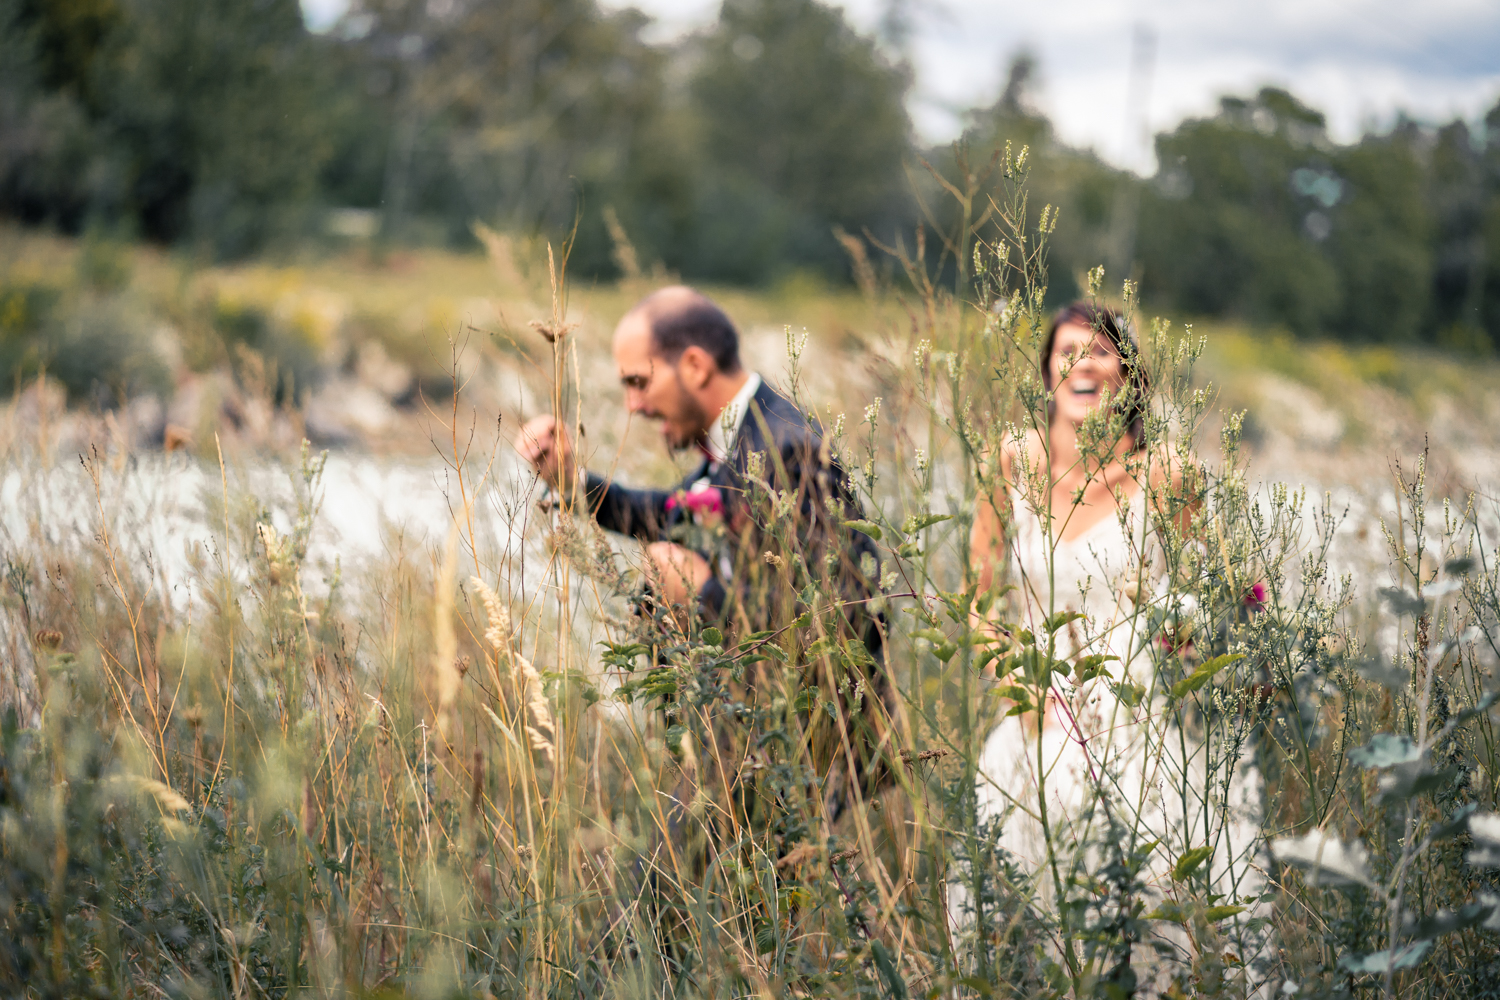 mariage nature campagne armelle dupuis